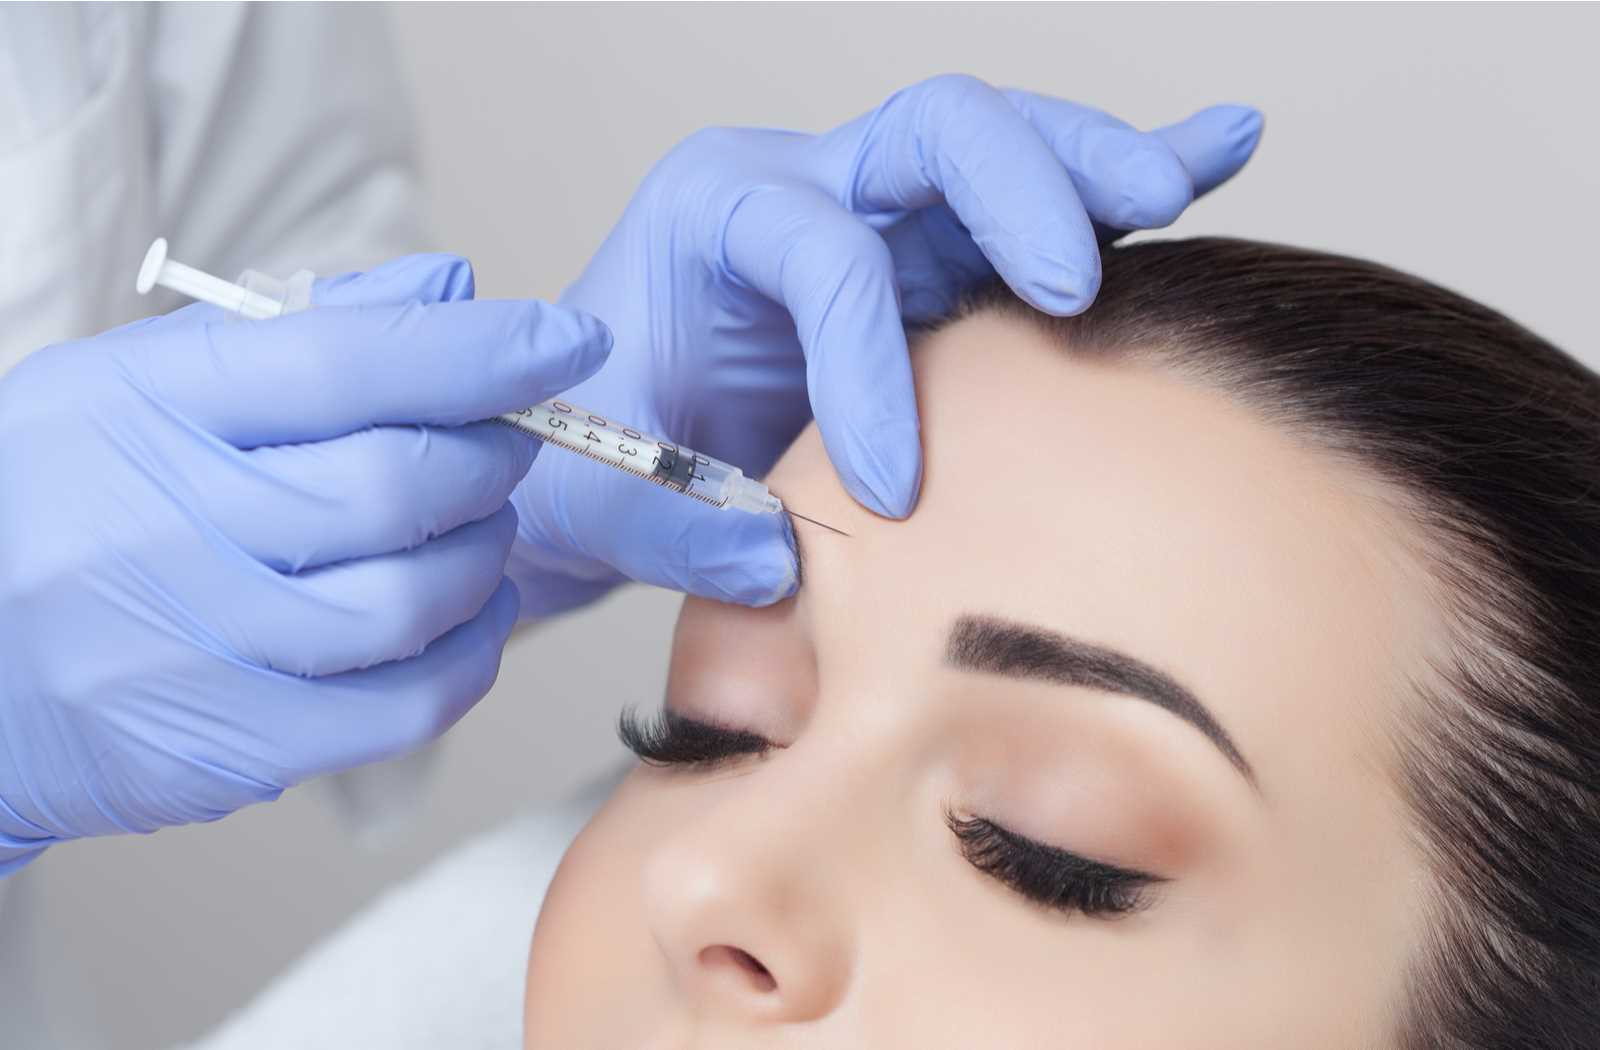 close up of a woman receiving a botox injection to her forehead from hands wearing light blue gloves